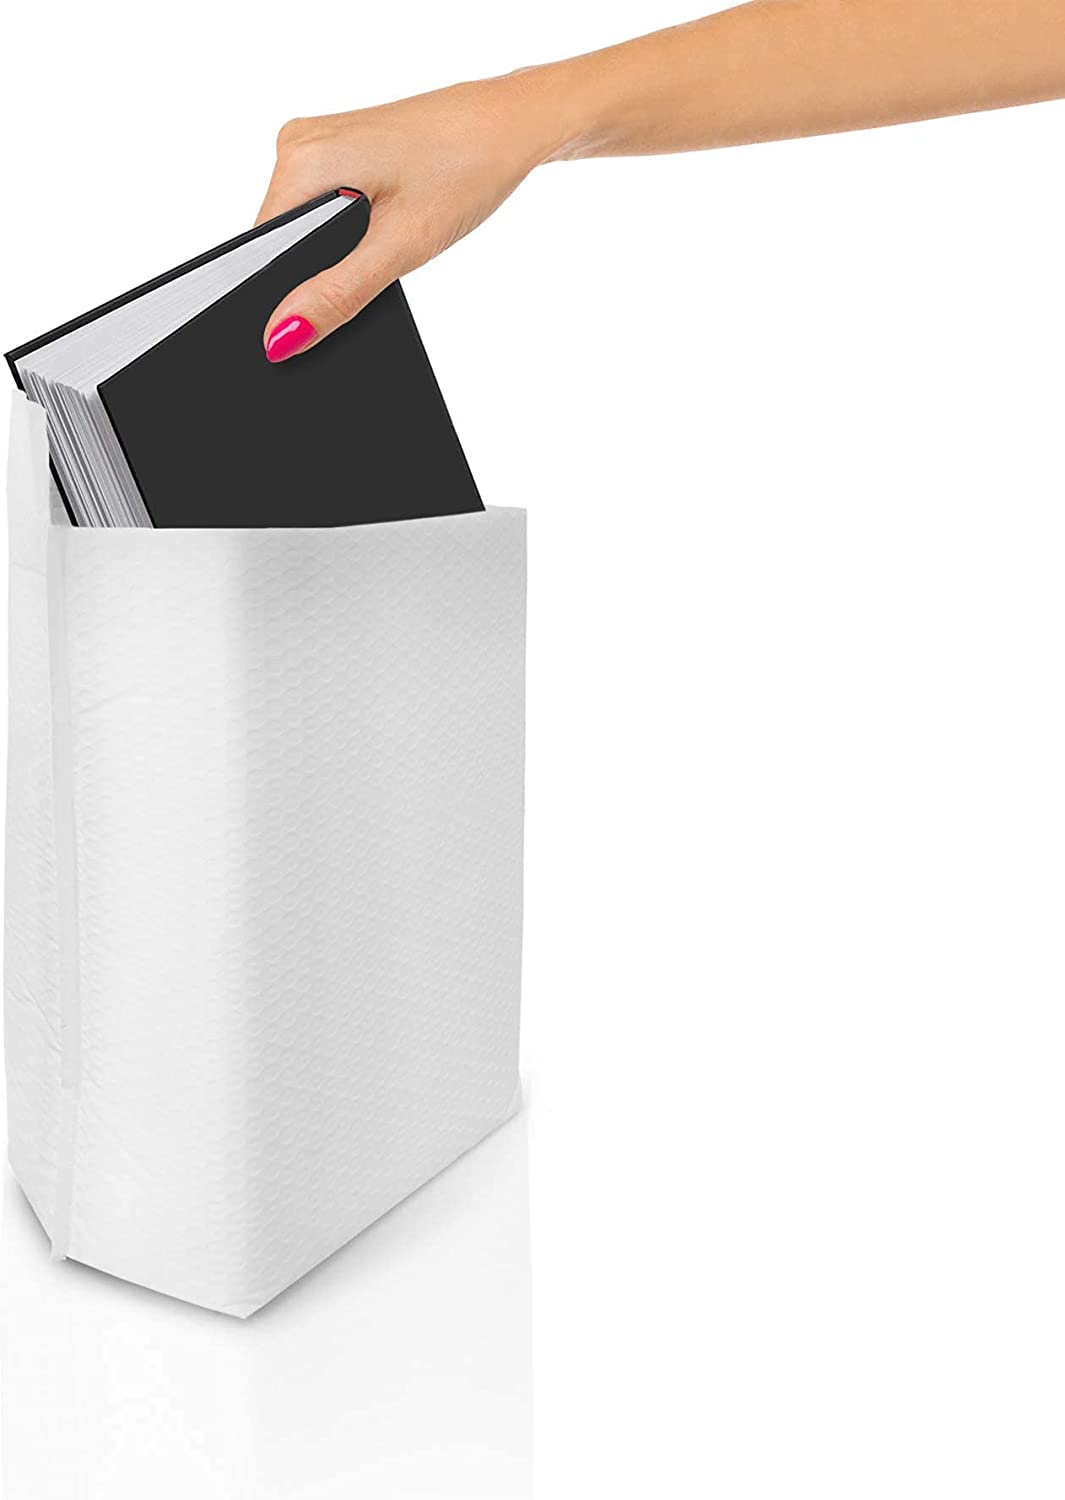 Pack of 100 Expandable Bubble Mailers Challenge the lowest price Omaha Mall 4. x 10.5 15.75 Gusseted